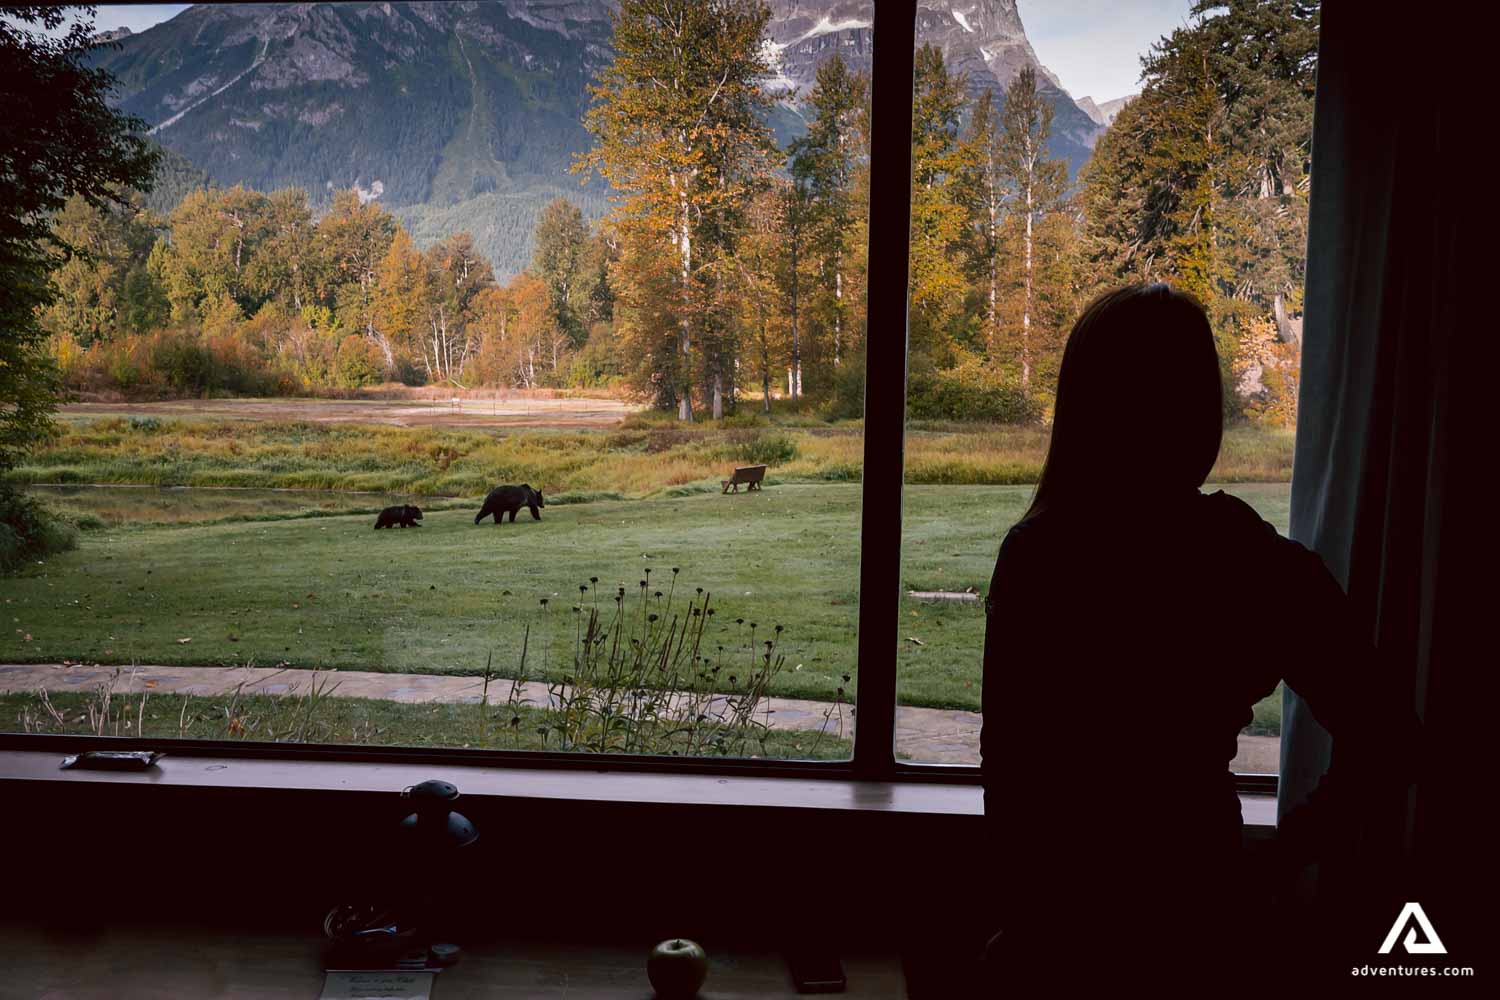 Watching bear wildlife from a window